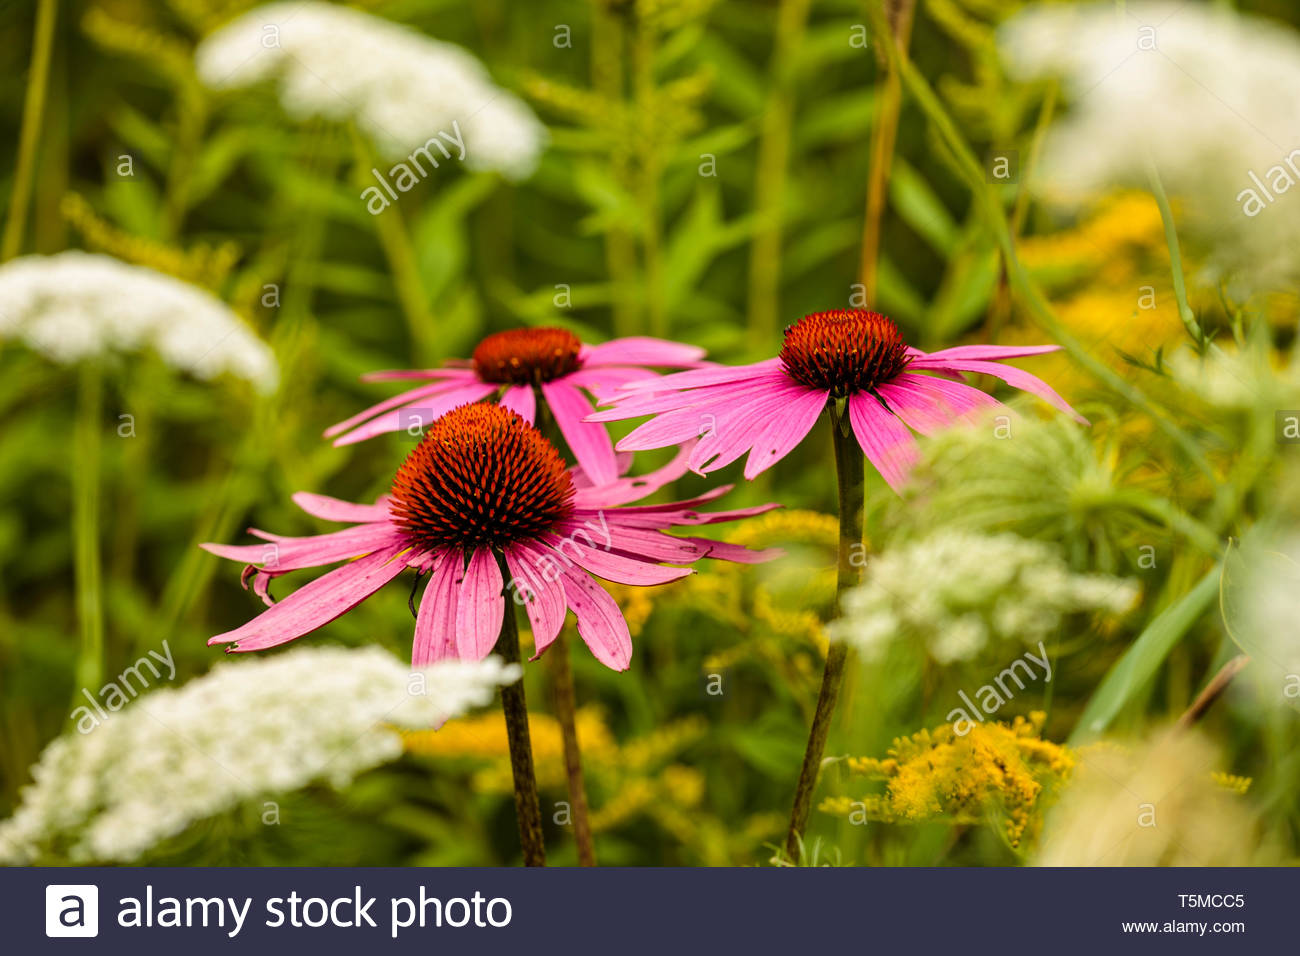 In late August, the Purple Coneflowers reside alongside the Queen Anne's Lace and Goldenrod within the Forest Beach Migratory Preserve, Port Washingto - Stock Image